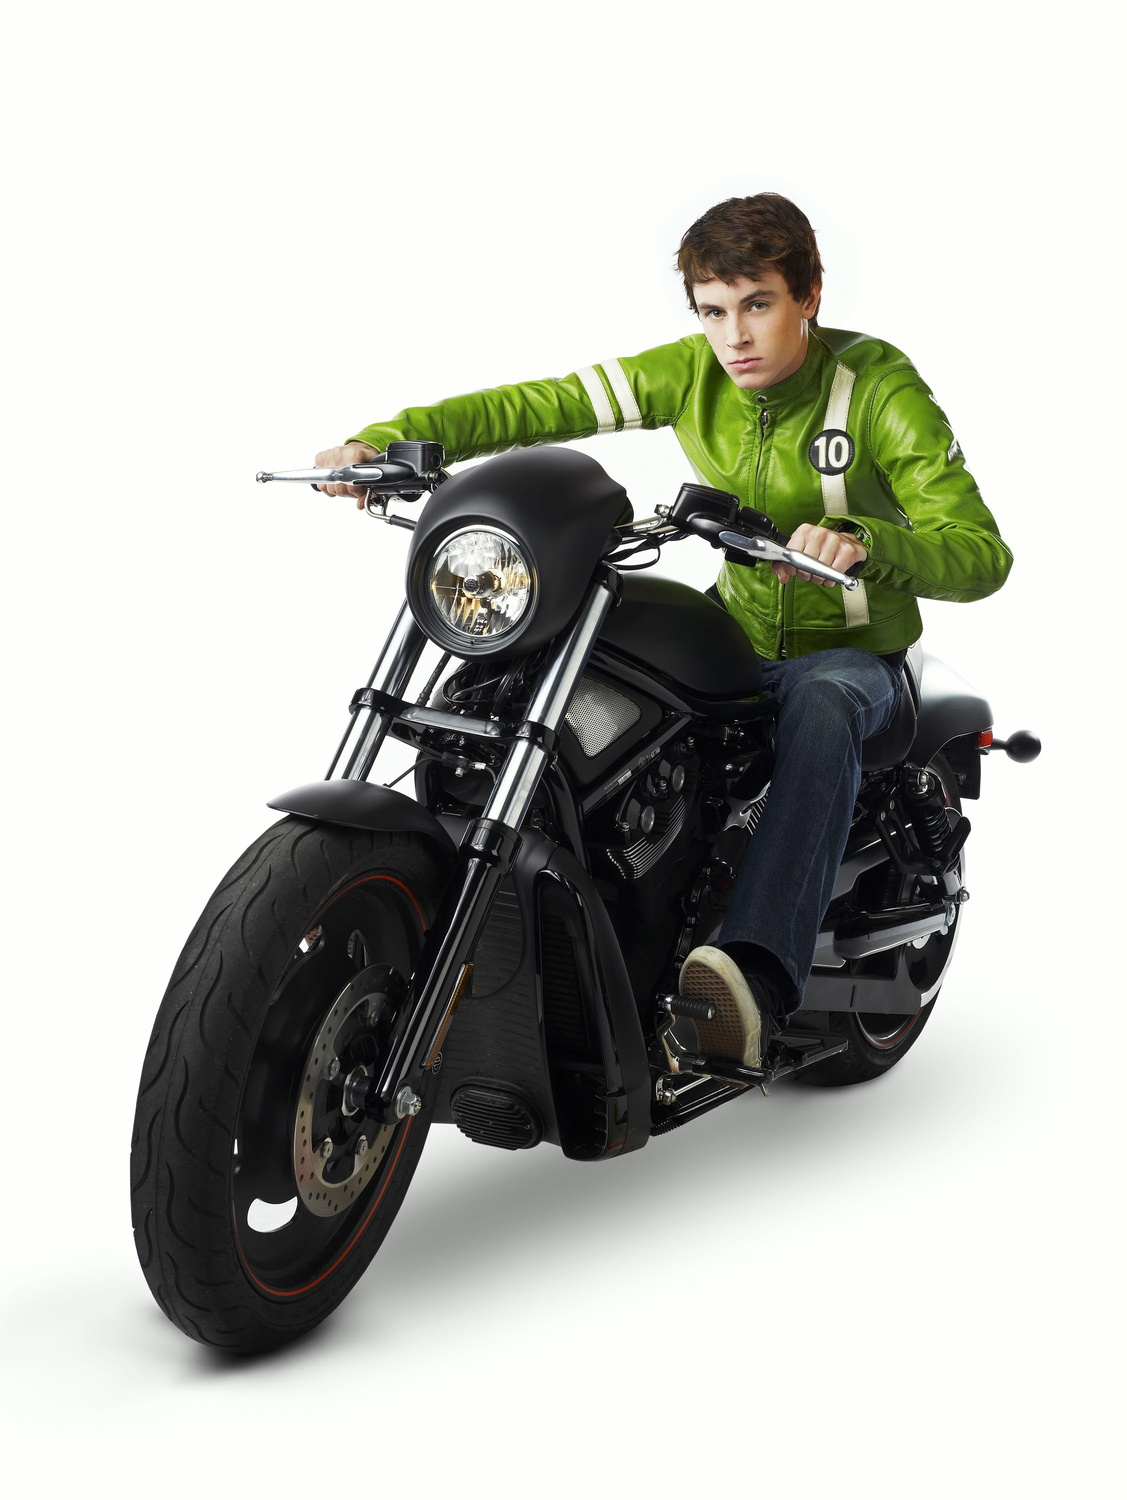 Ben_Tennyson_in_Alien_Swarm_motorcycle.png